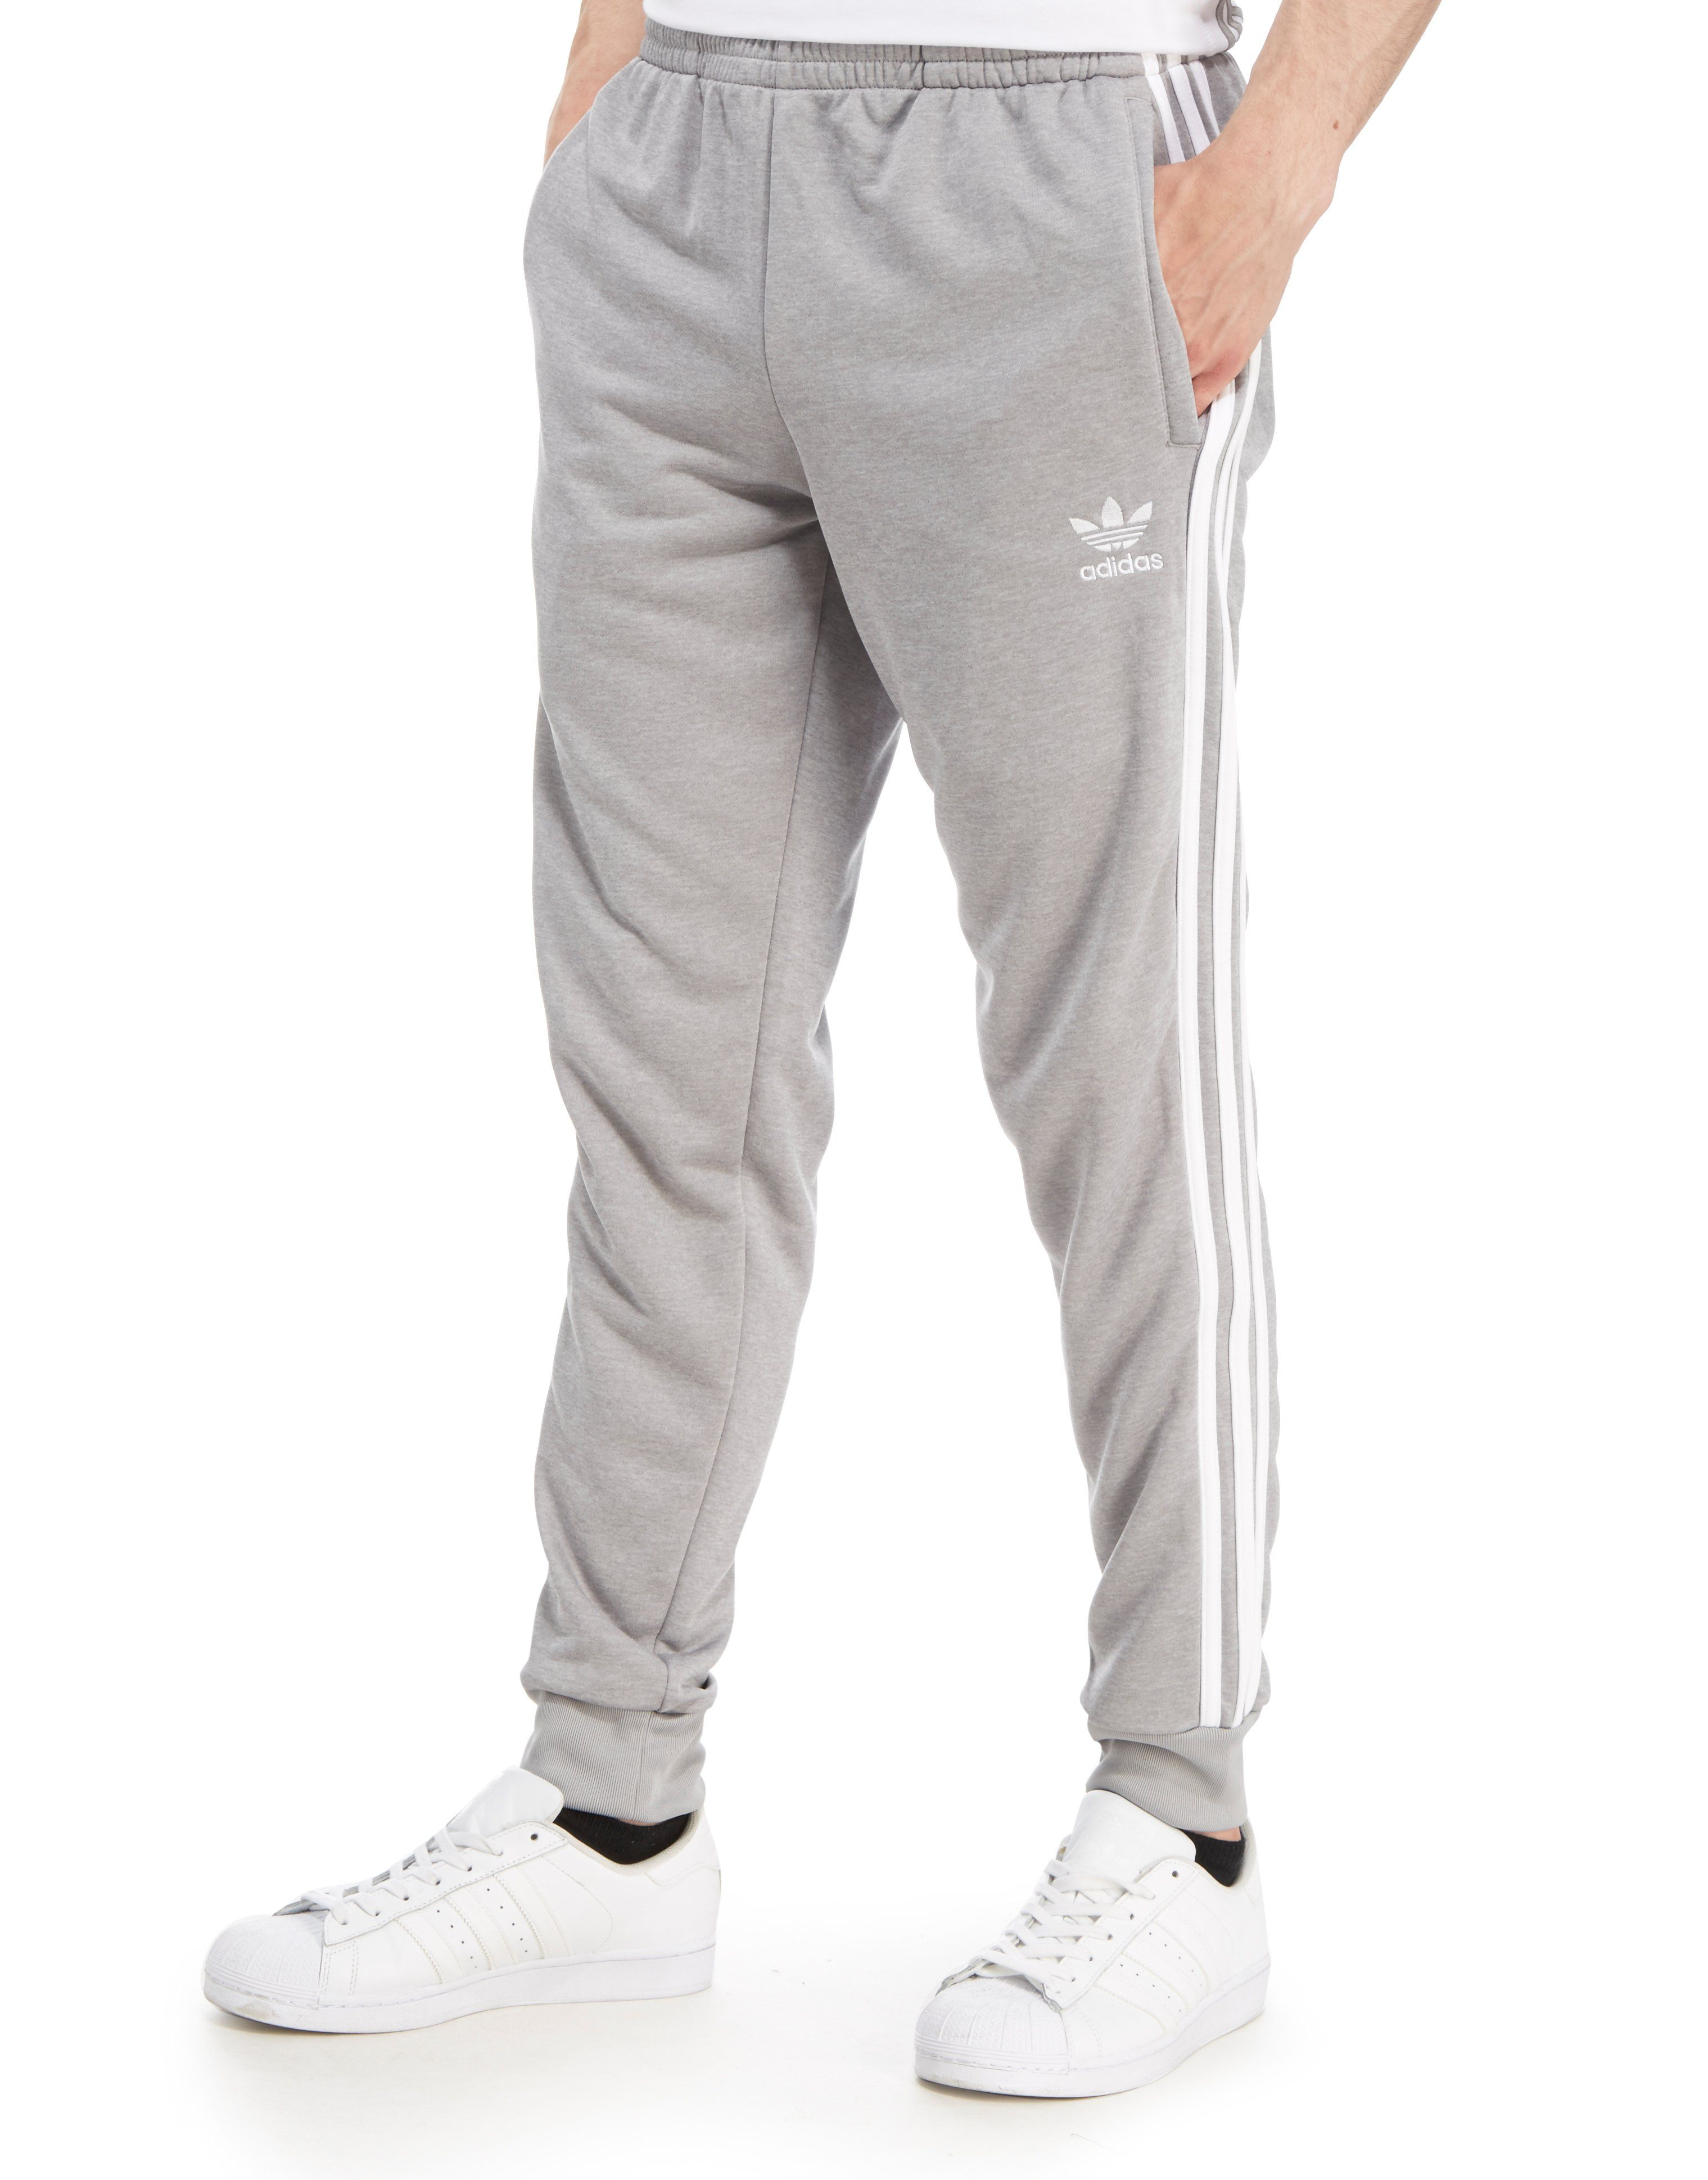 1a55c194e5f6 Adidas adidas Originals Superstar Track Pants Grey Size 30 - Sweatpants    Joggers for Sale - Grailed